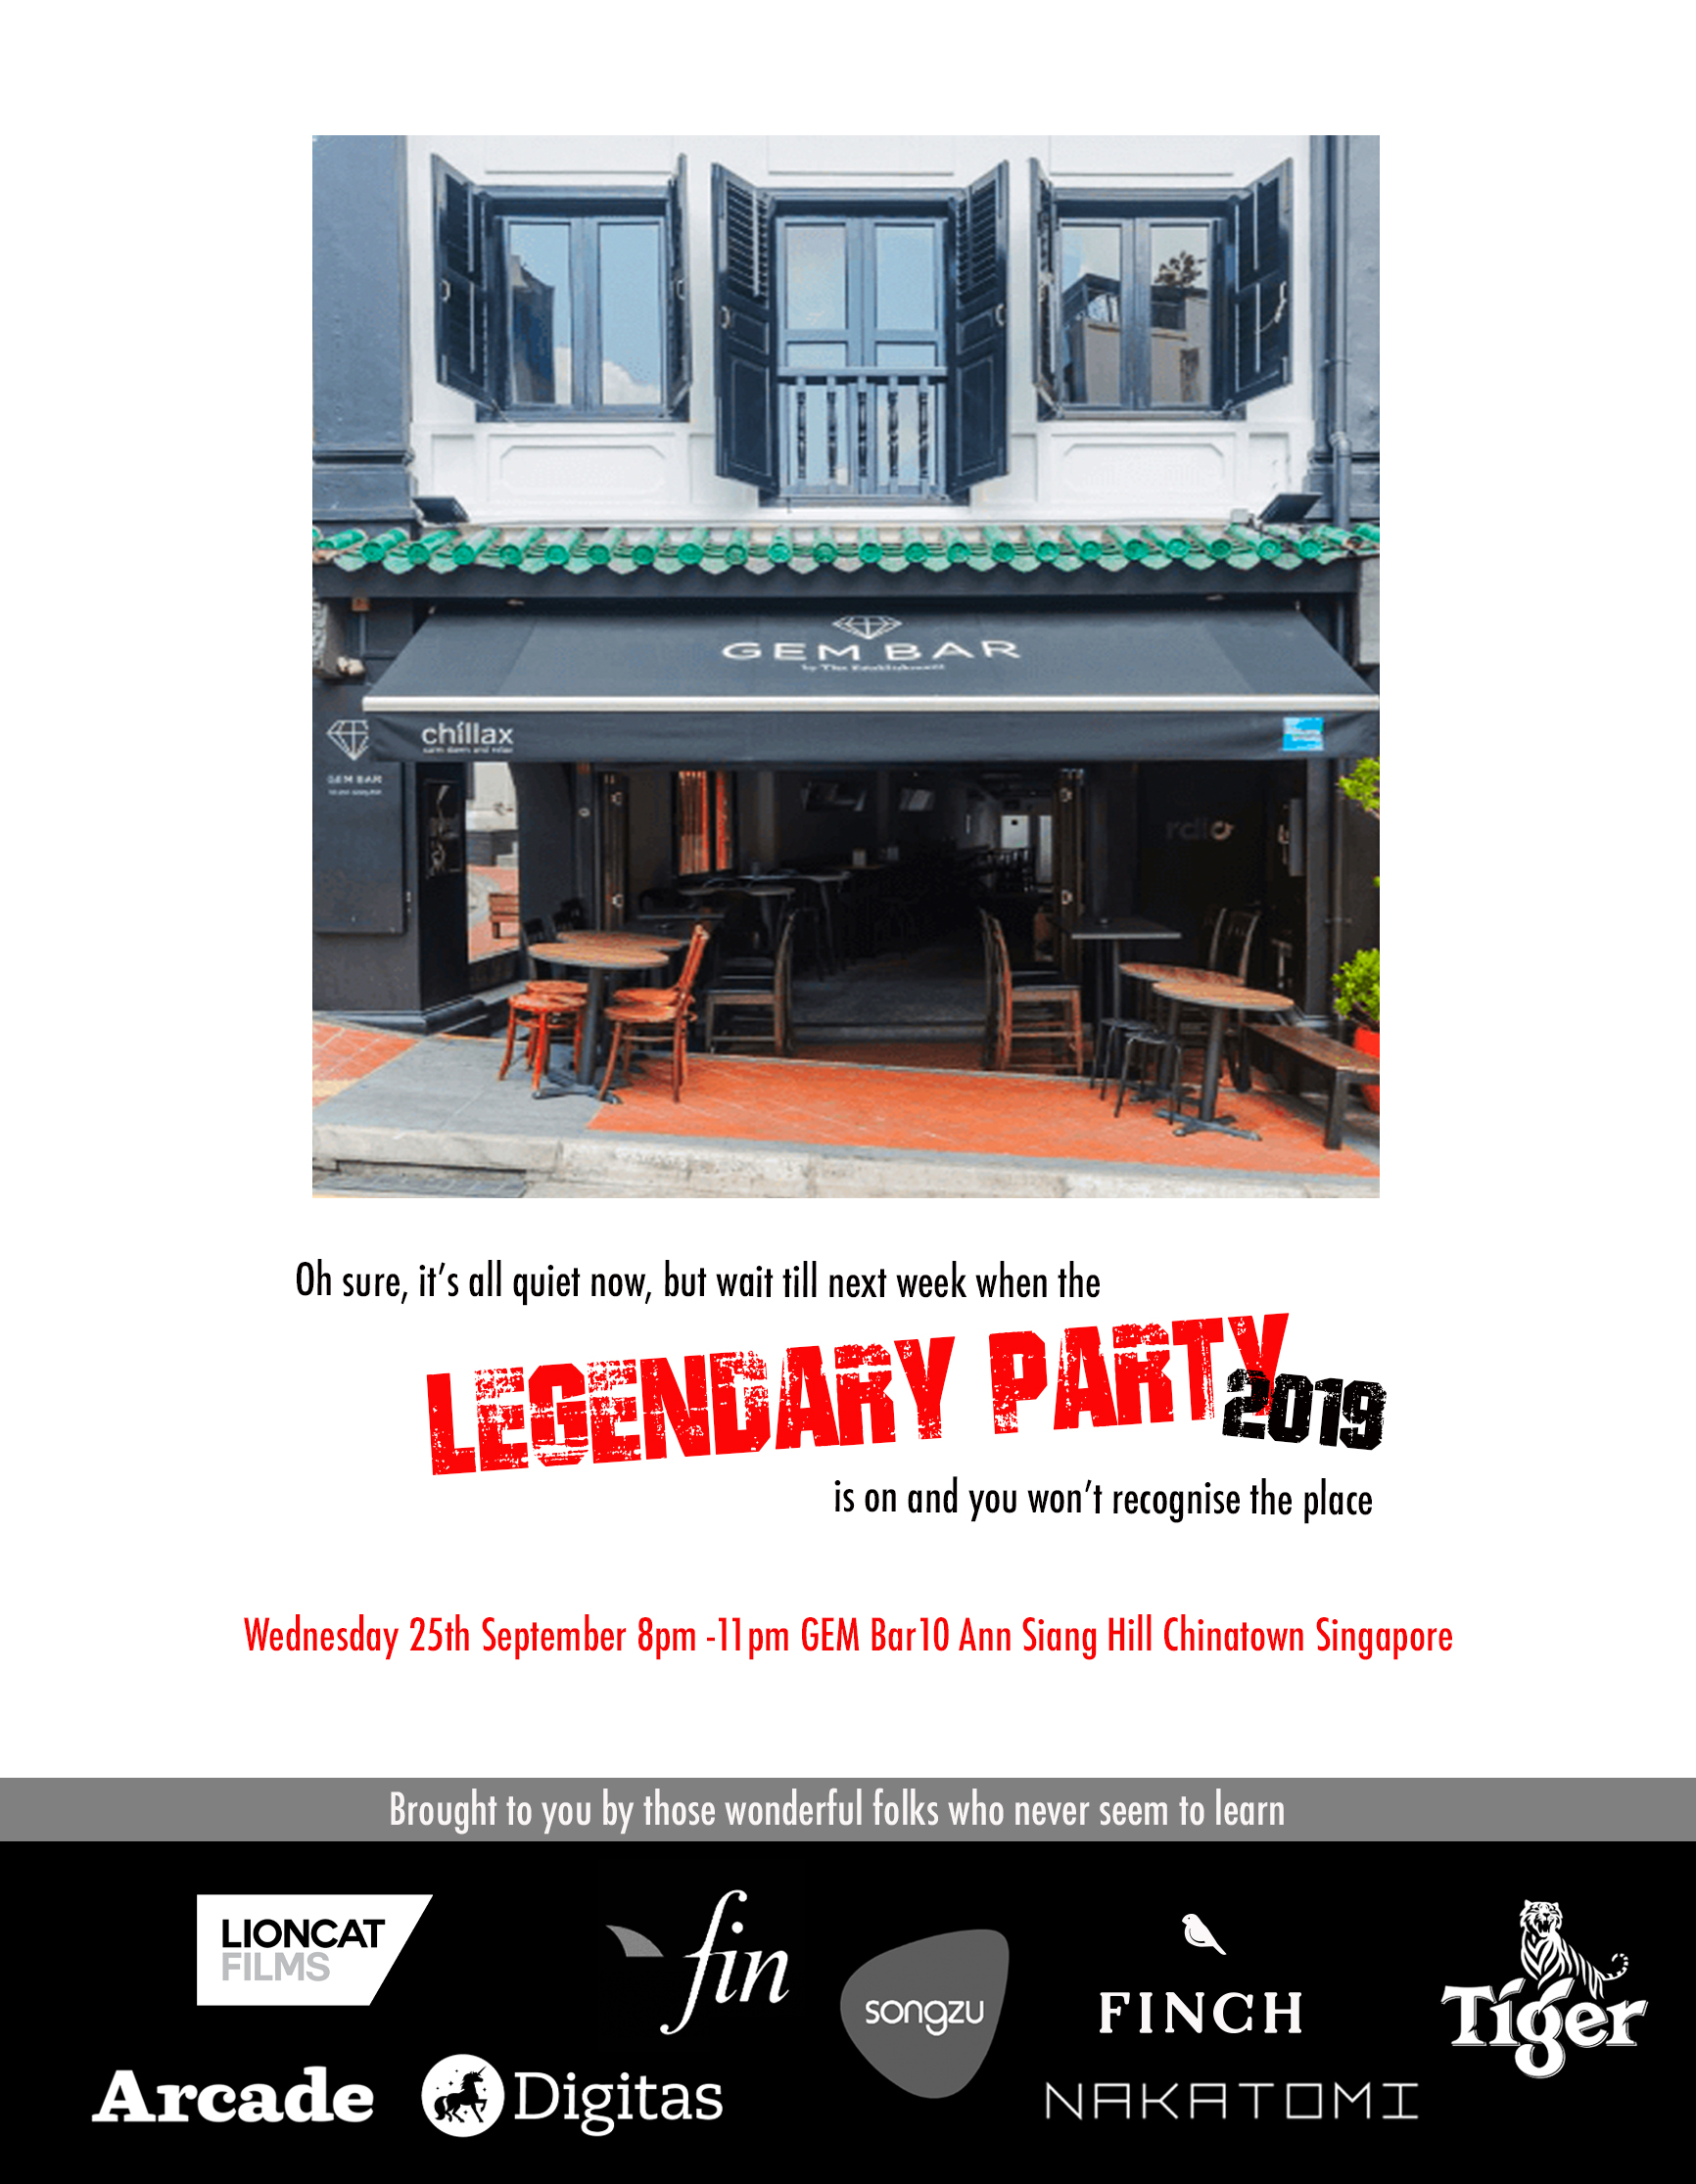 Join Song Zu, Fin Design + Effects, Arcade, Finch, NAKATOMI, Lioncat Films, Digitas & Tiger Beer at the Spikes Legendary Party tonight in Singapore